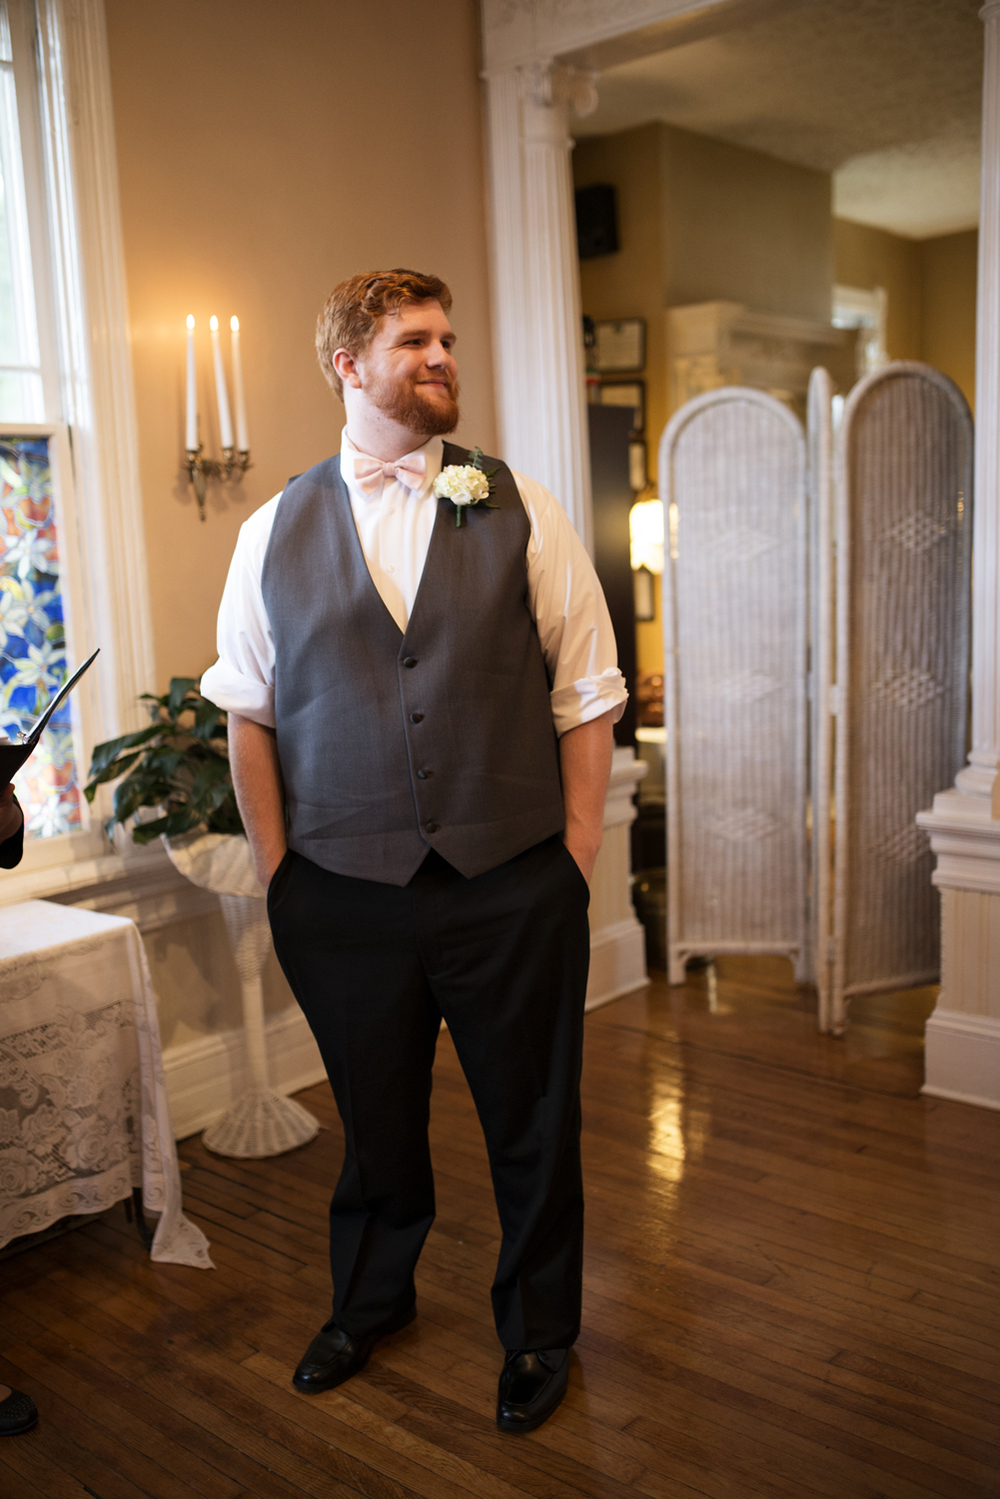 A groom waits for his bride before they elope | Magnolia House Inn